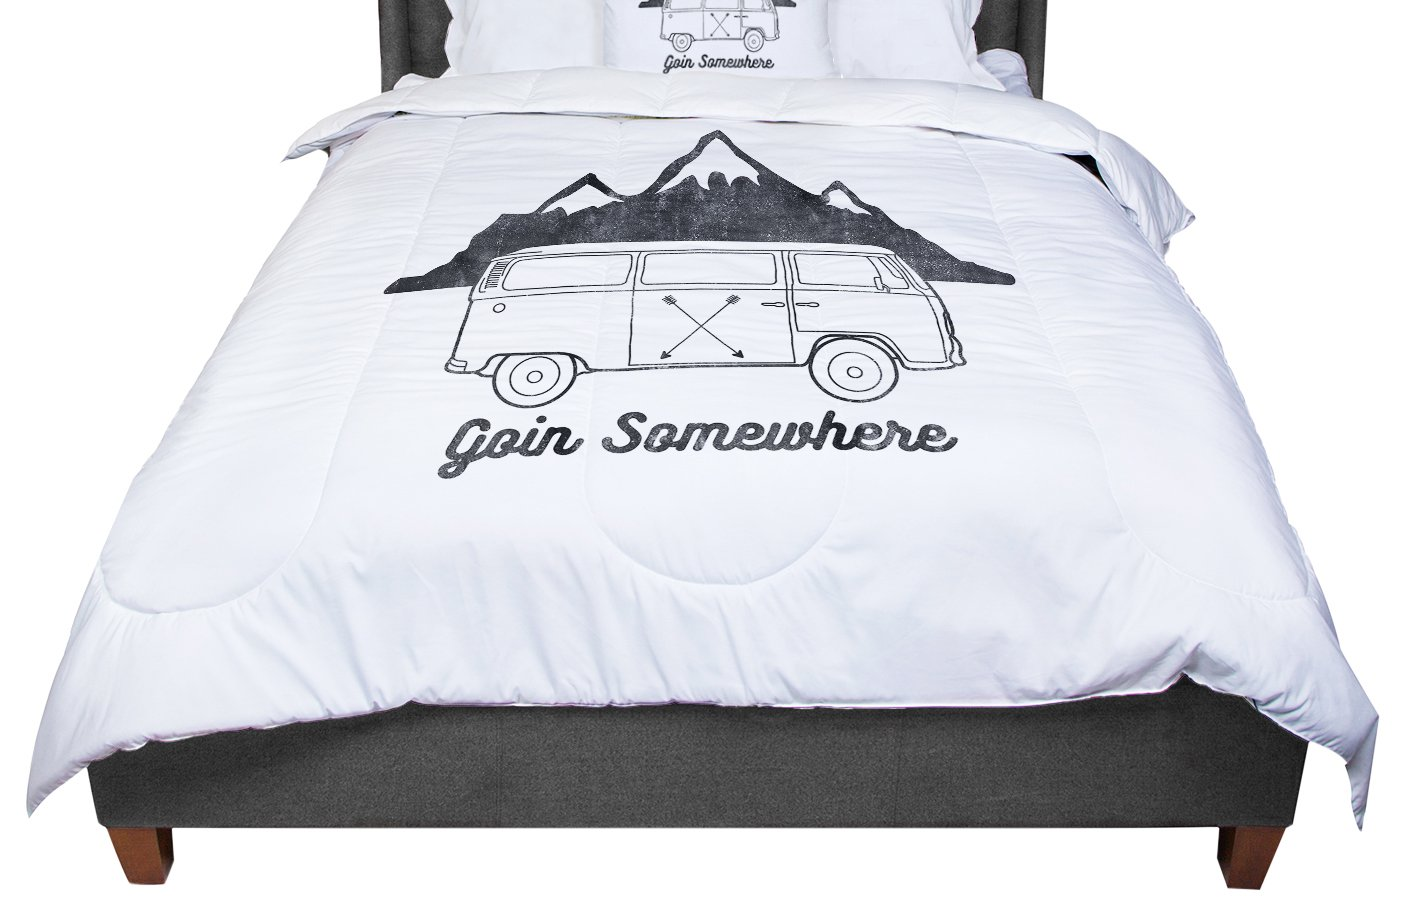 KESS InHouse Draper Going Somewhere W White Typography King 104 X 88 Cal King Comforter